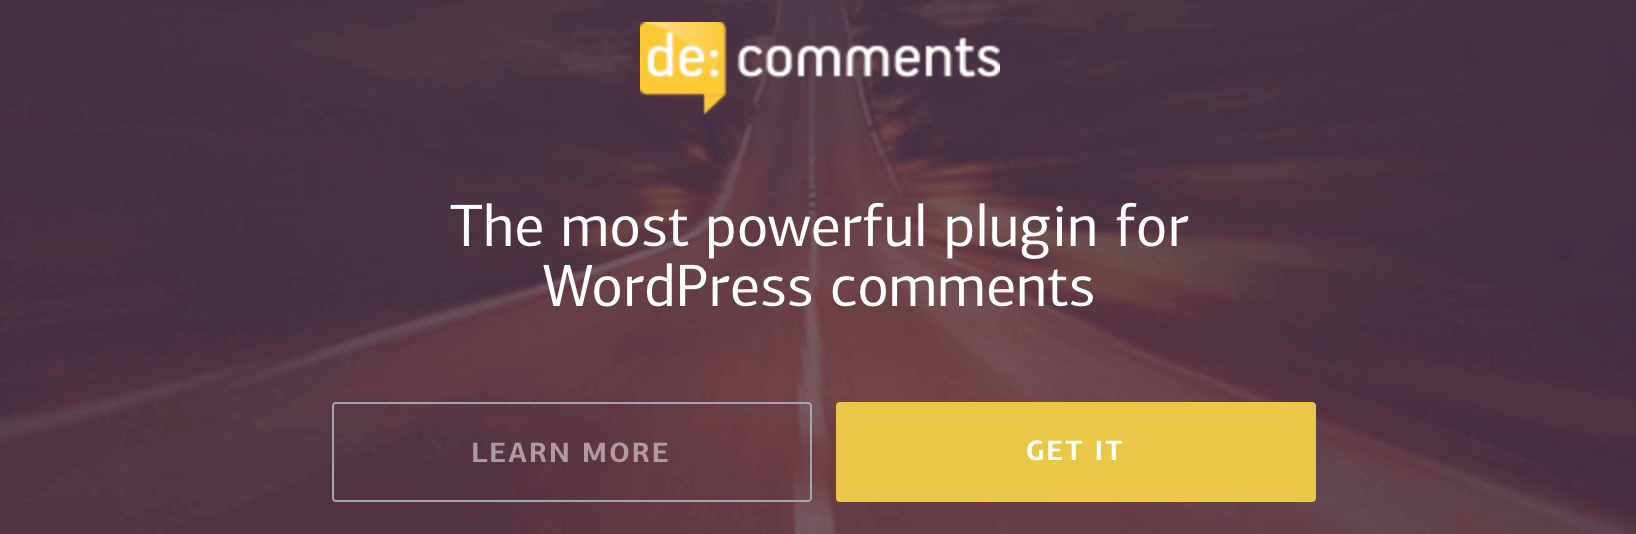 Decomments wp plugin